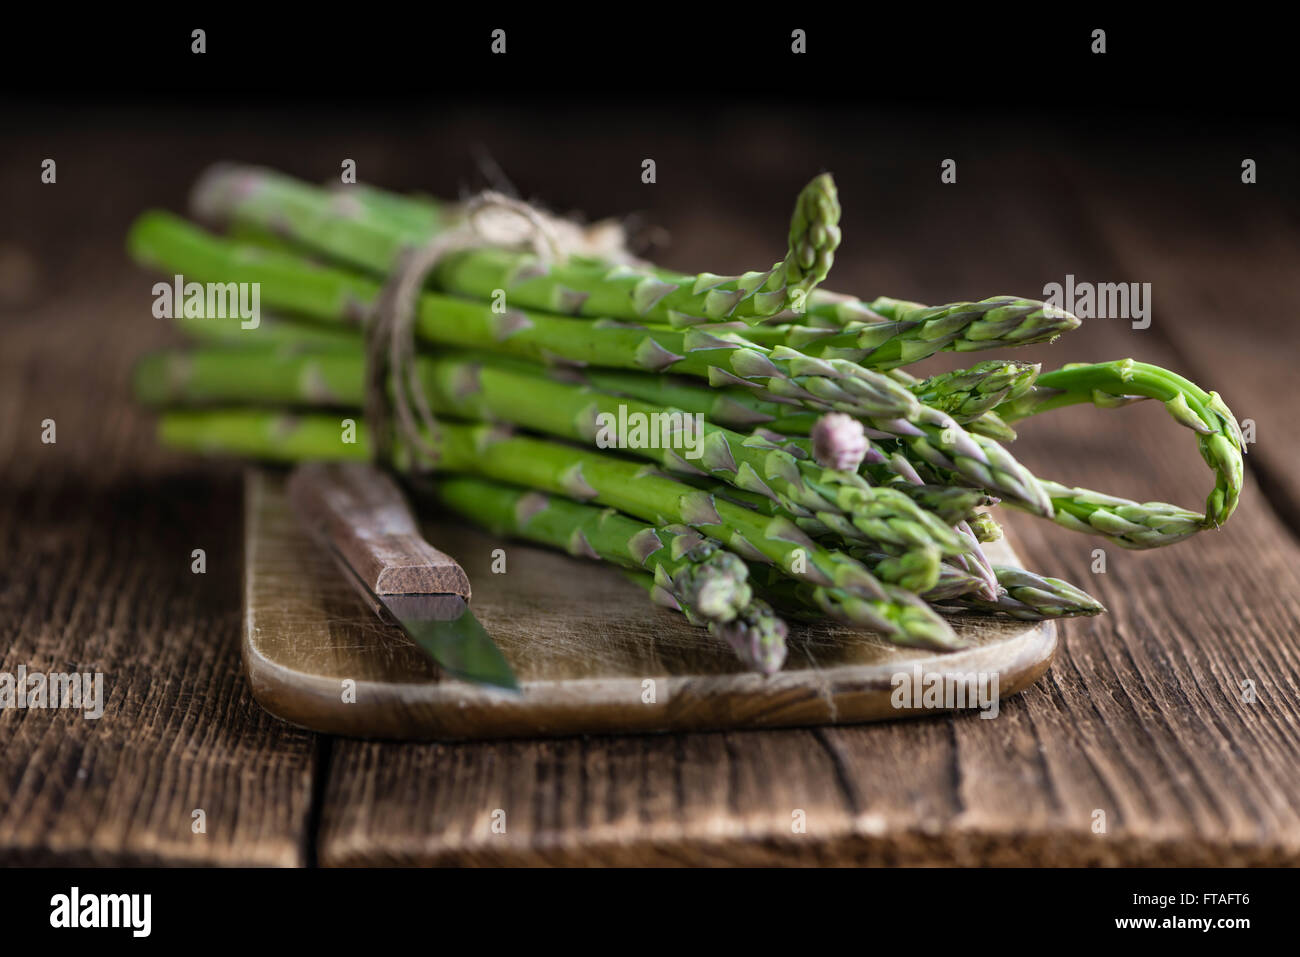 Fresh green Asparagus (selective focus, close-up shot) on wooden background - Stock Image